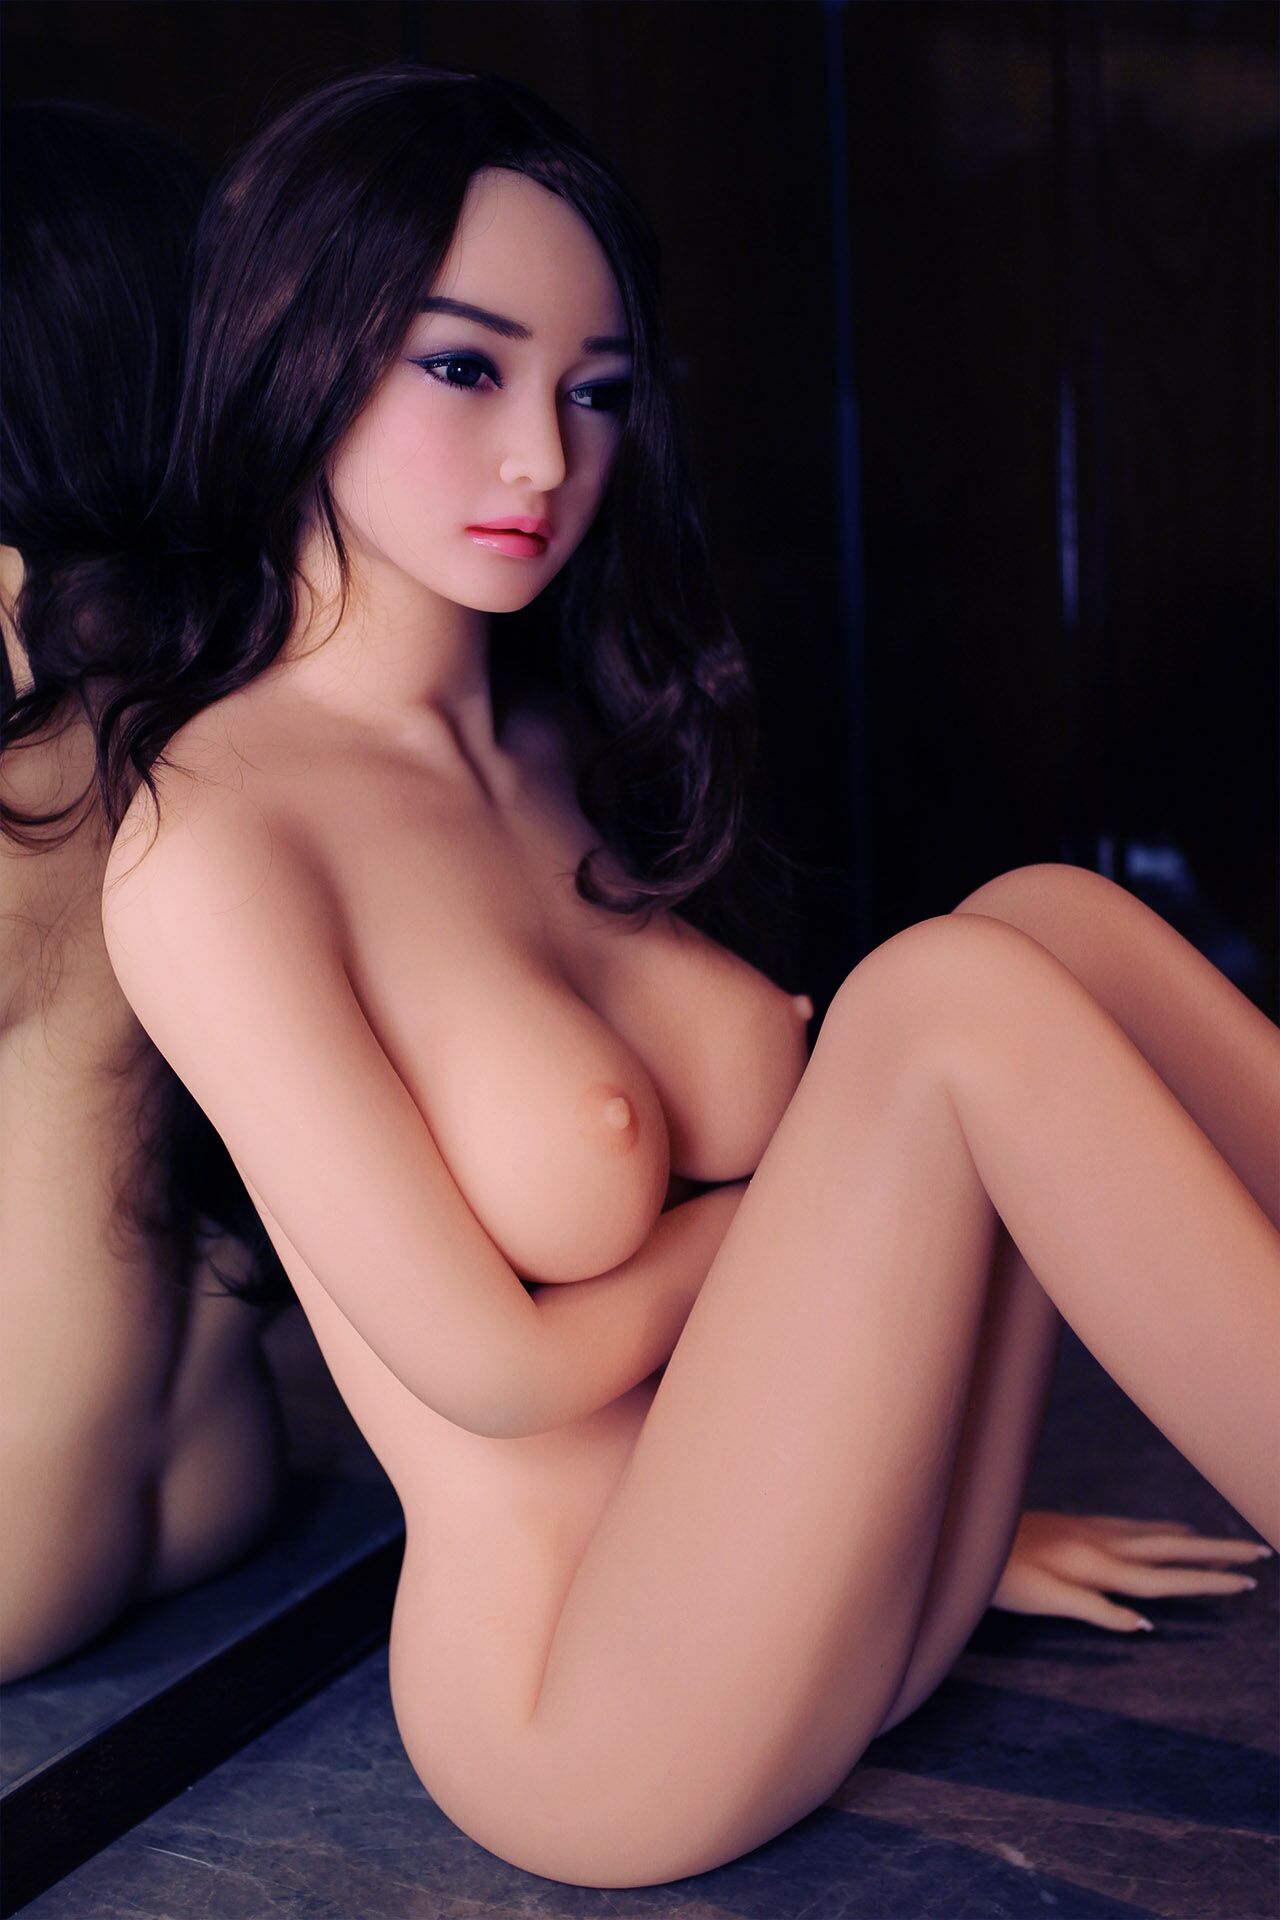 Sadie - Sexy Japanese Sex Doll